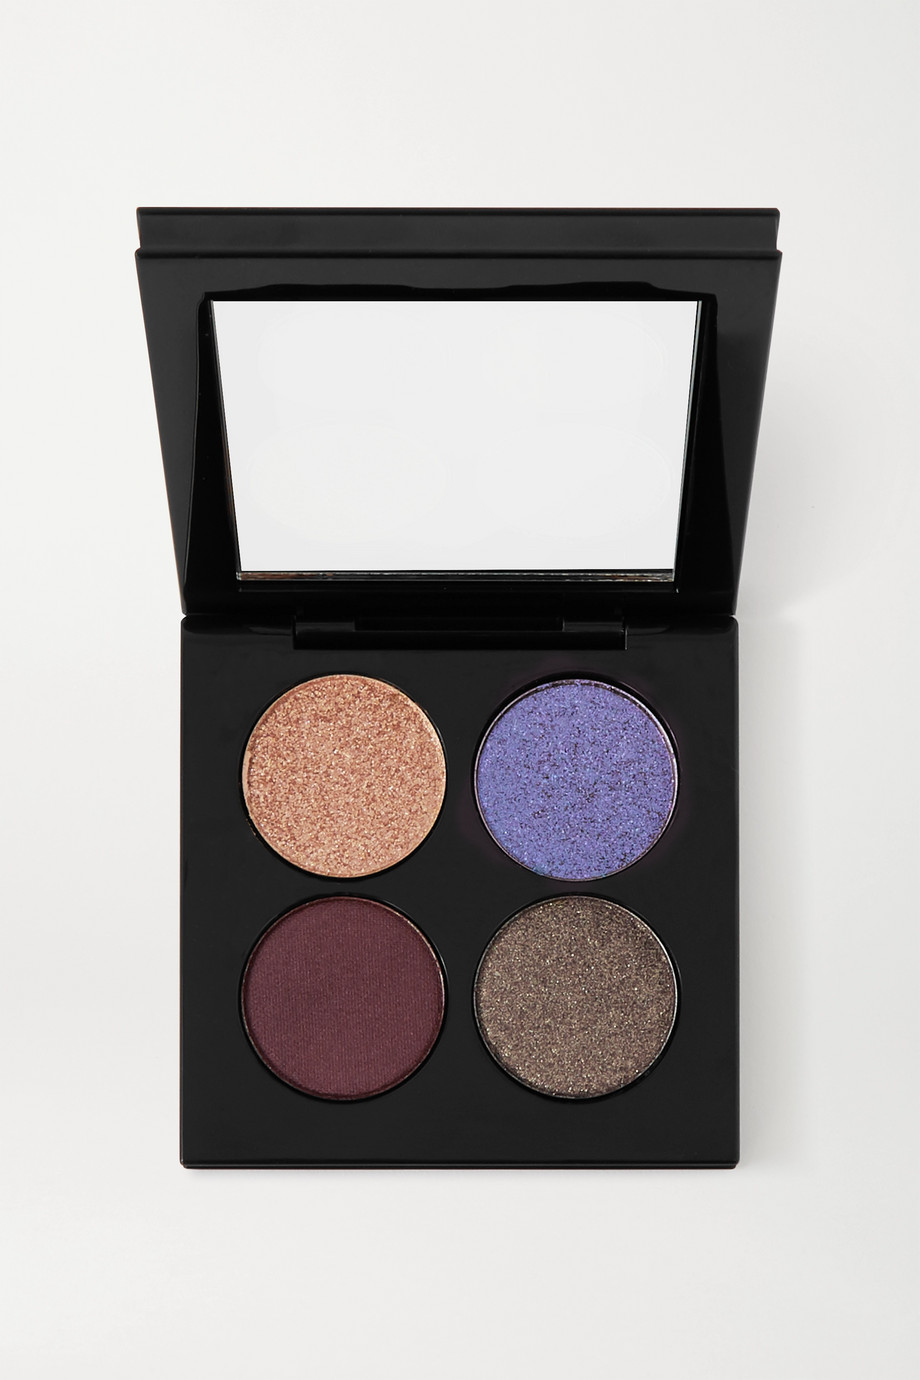 Pat McGrath Labs Celestial Divinity Luxe Eyeshadow Quad – Interstellar Icon – Lidschattenpalette